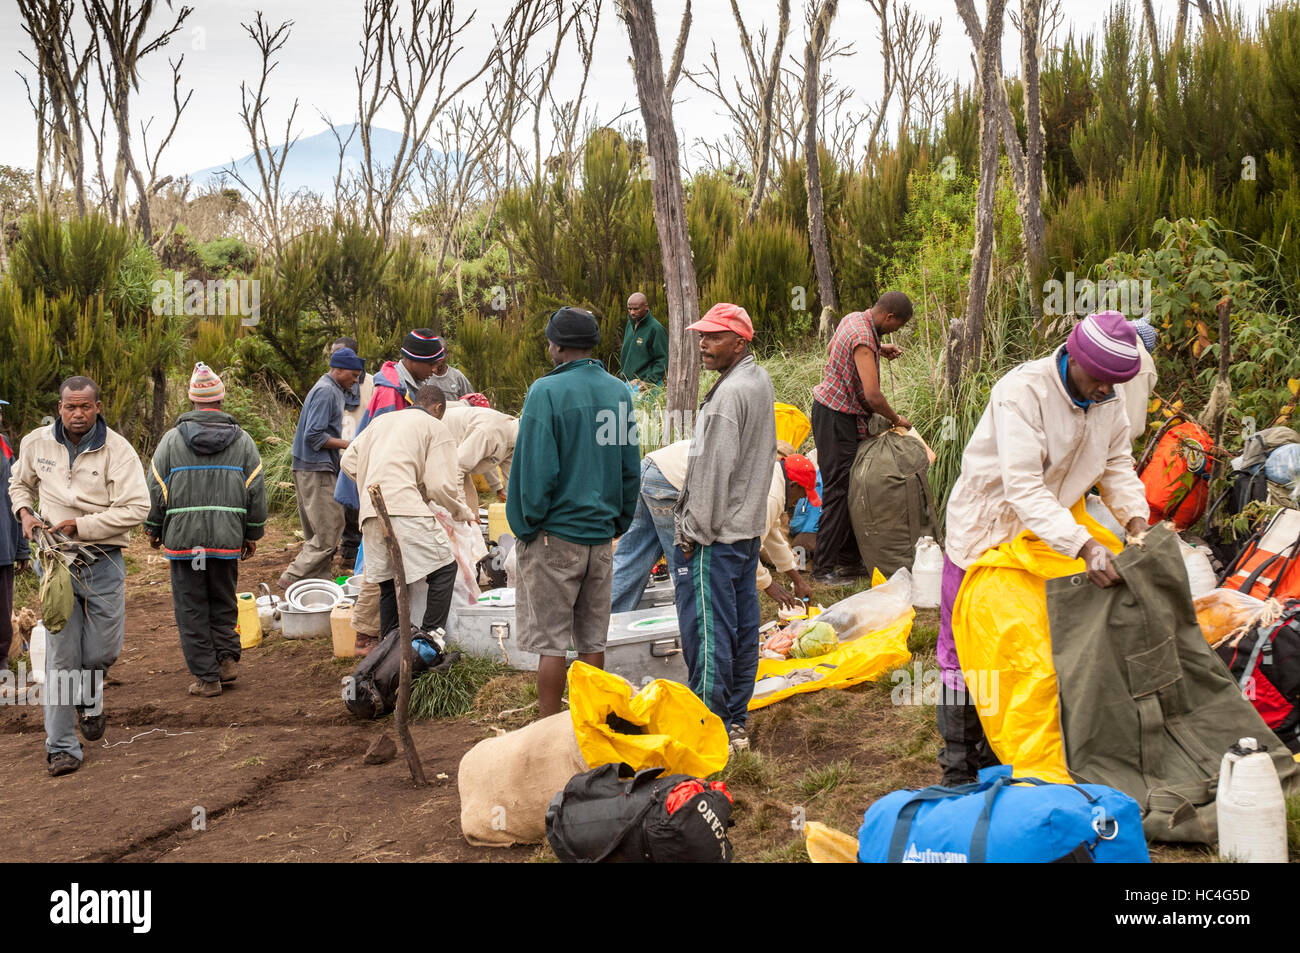 Porters packing up camp, Machame Route, Kilimanjaro, Tanzania - Stock Image